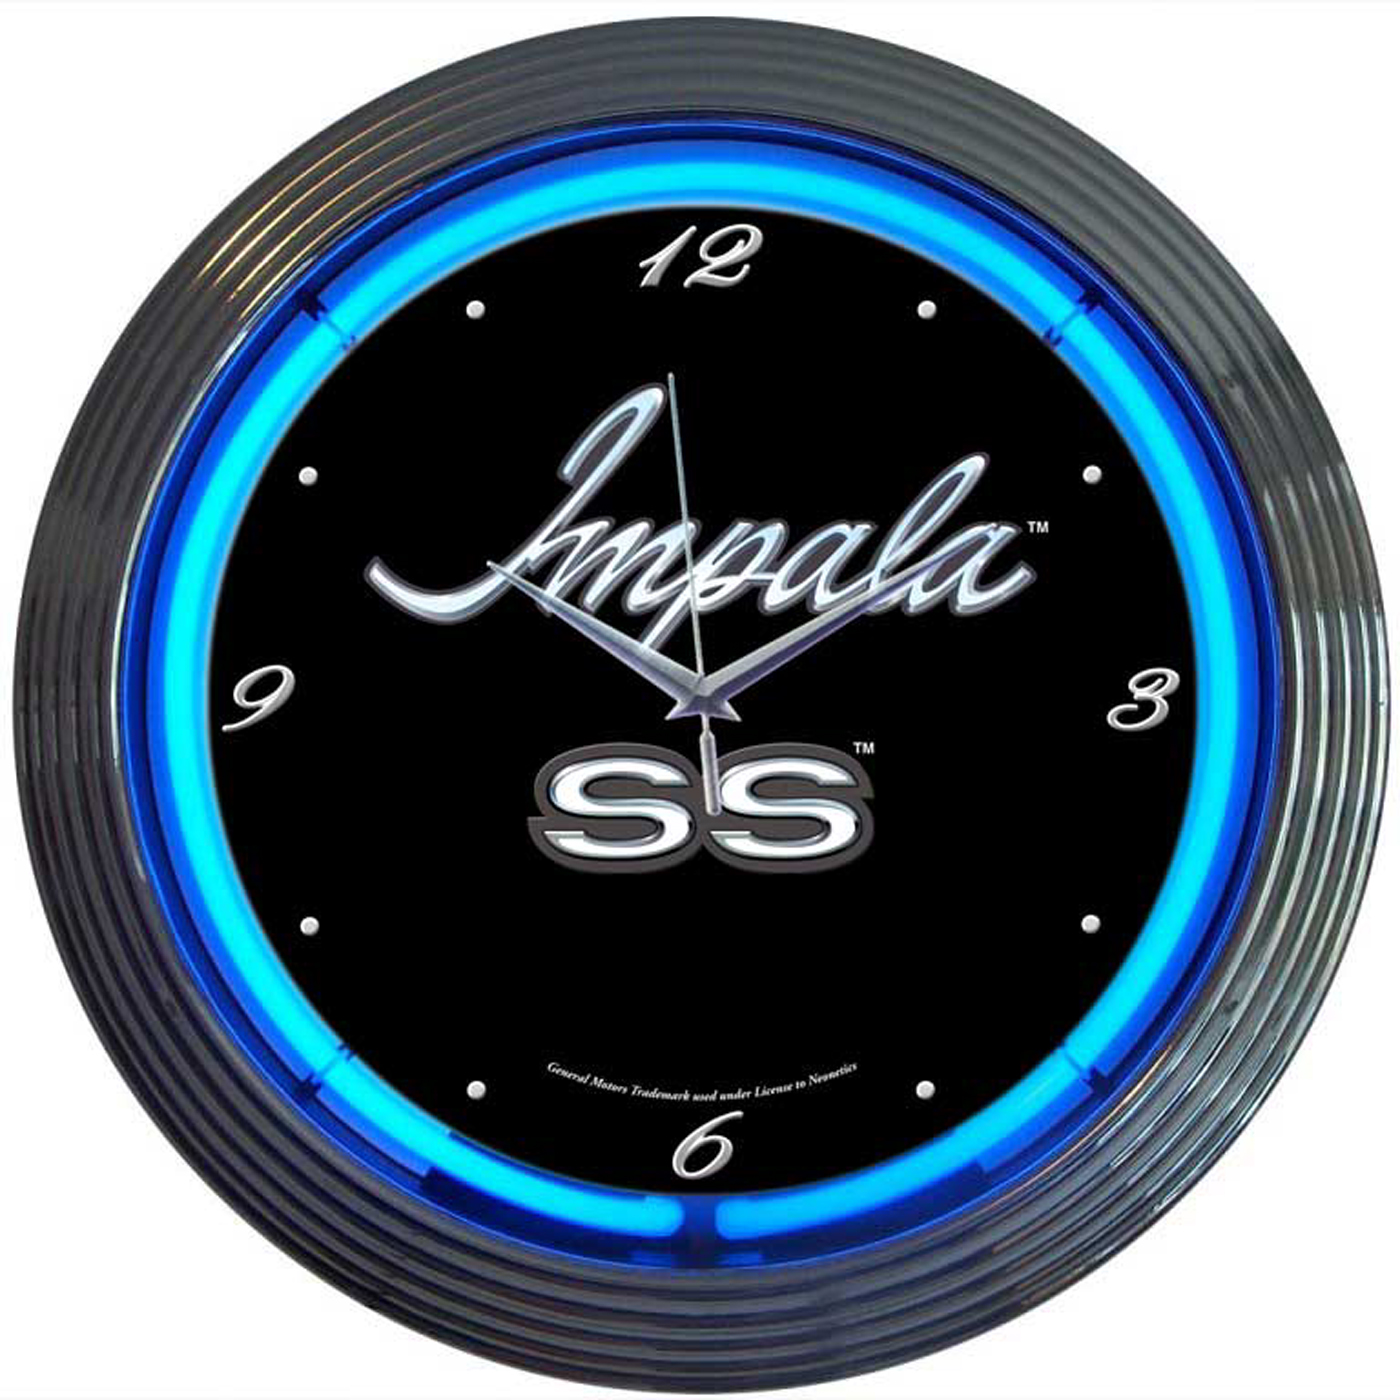 Impala Neon Clock by Neonetics in Wall Clocks